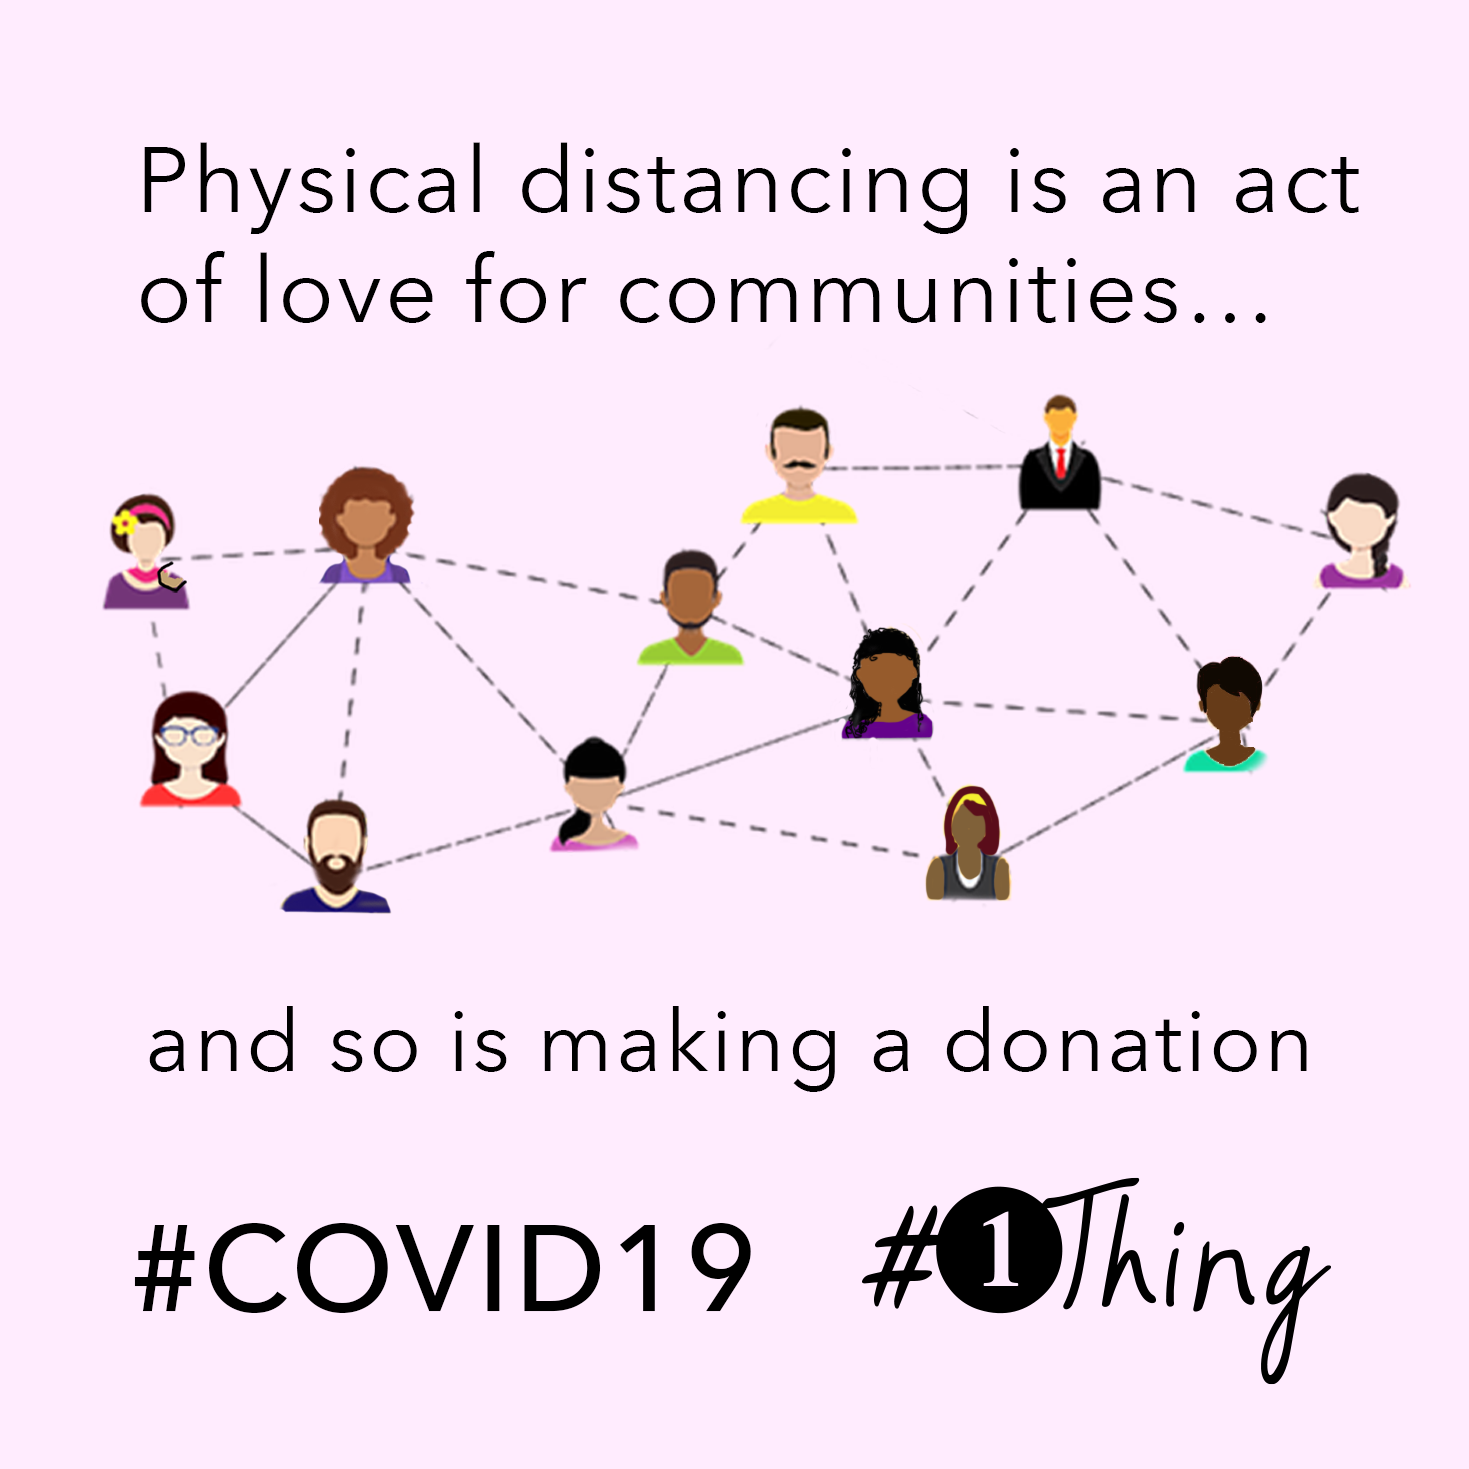 physical distancing is an act of love for communities...and so is making a donation.